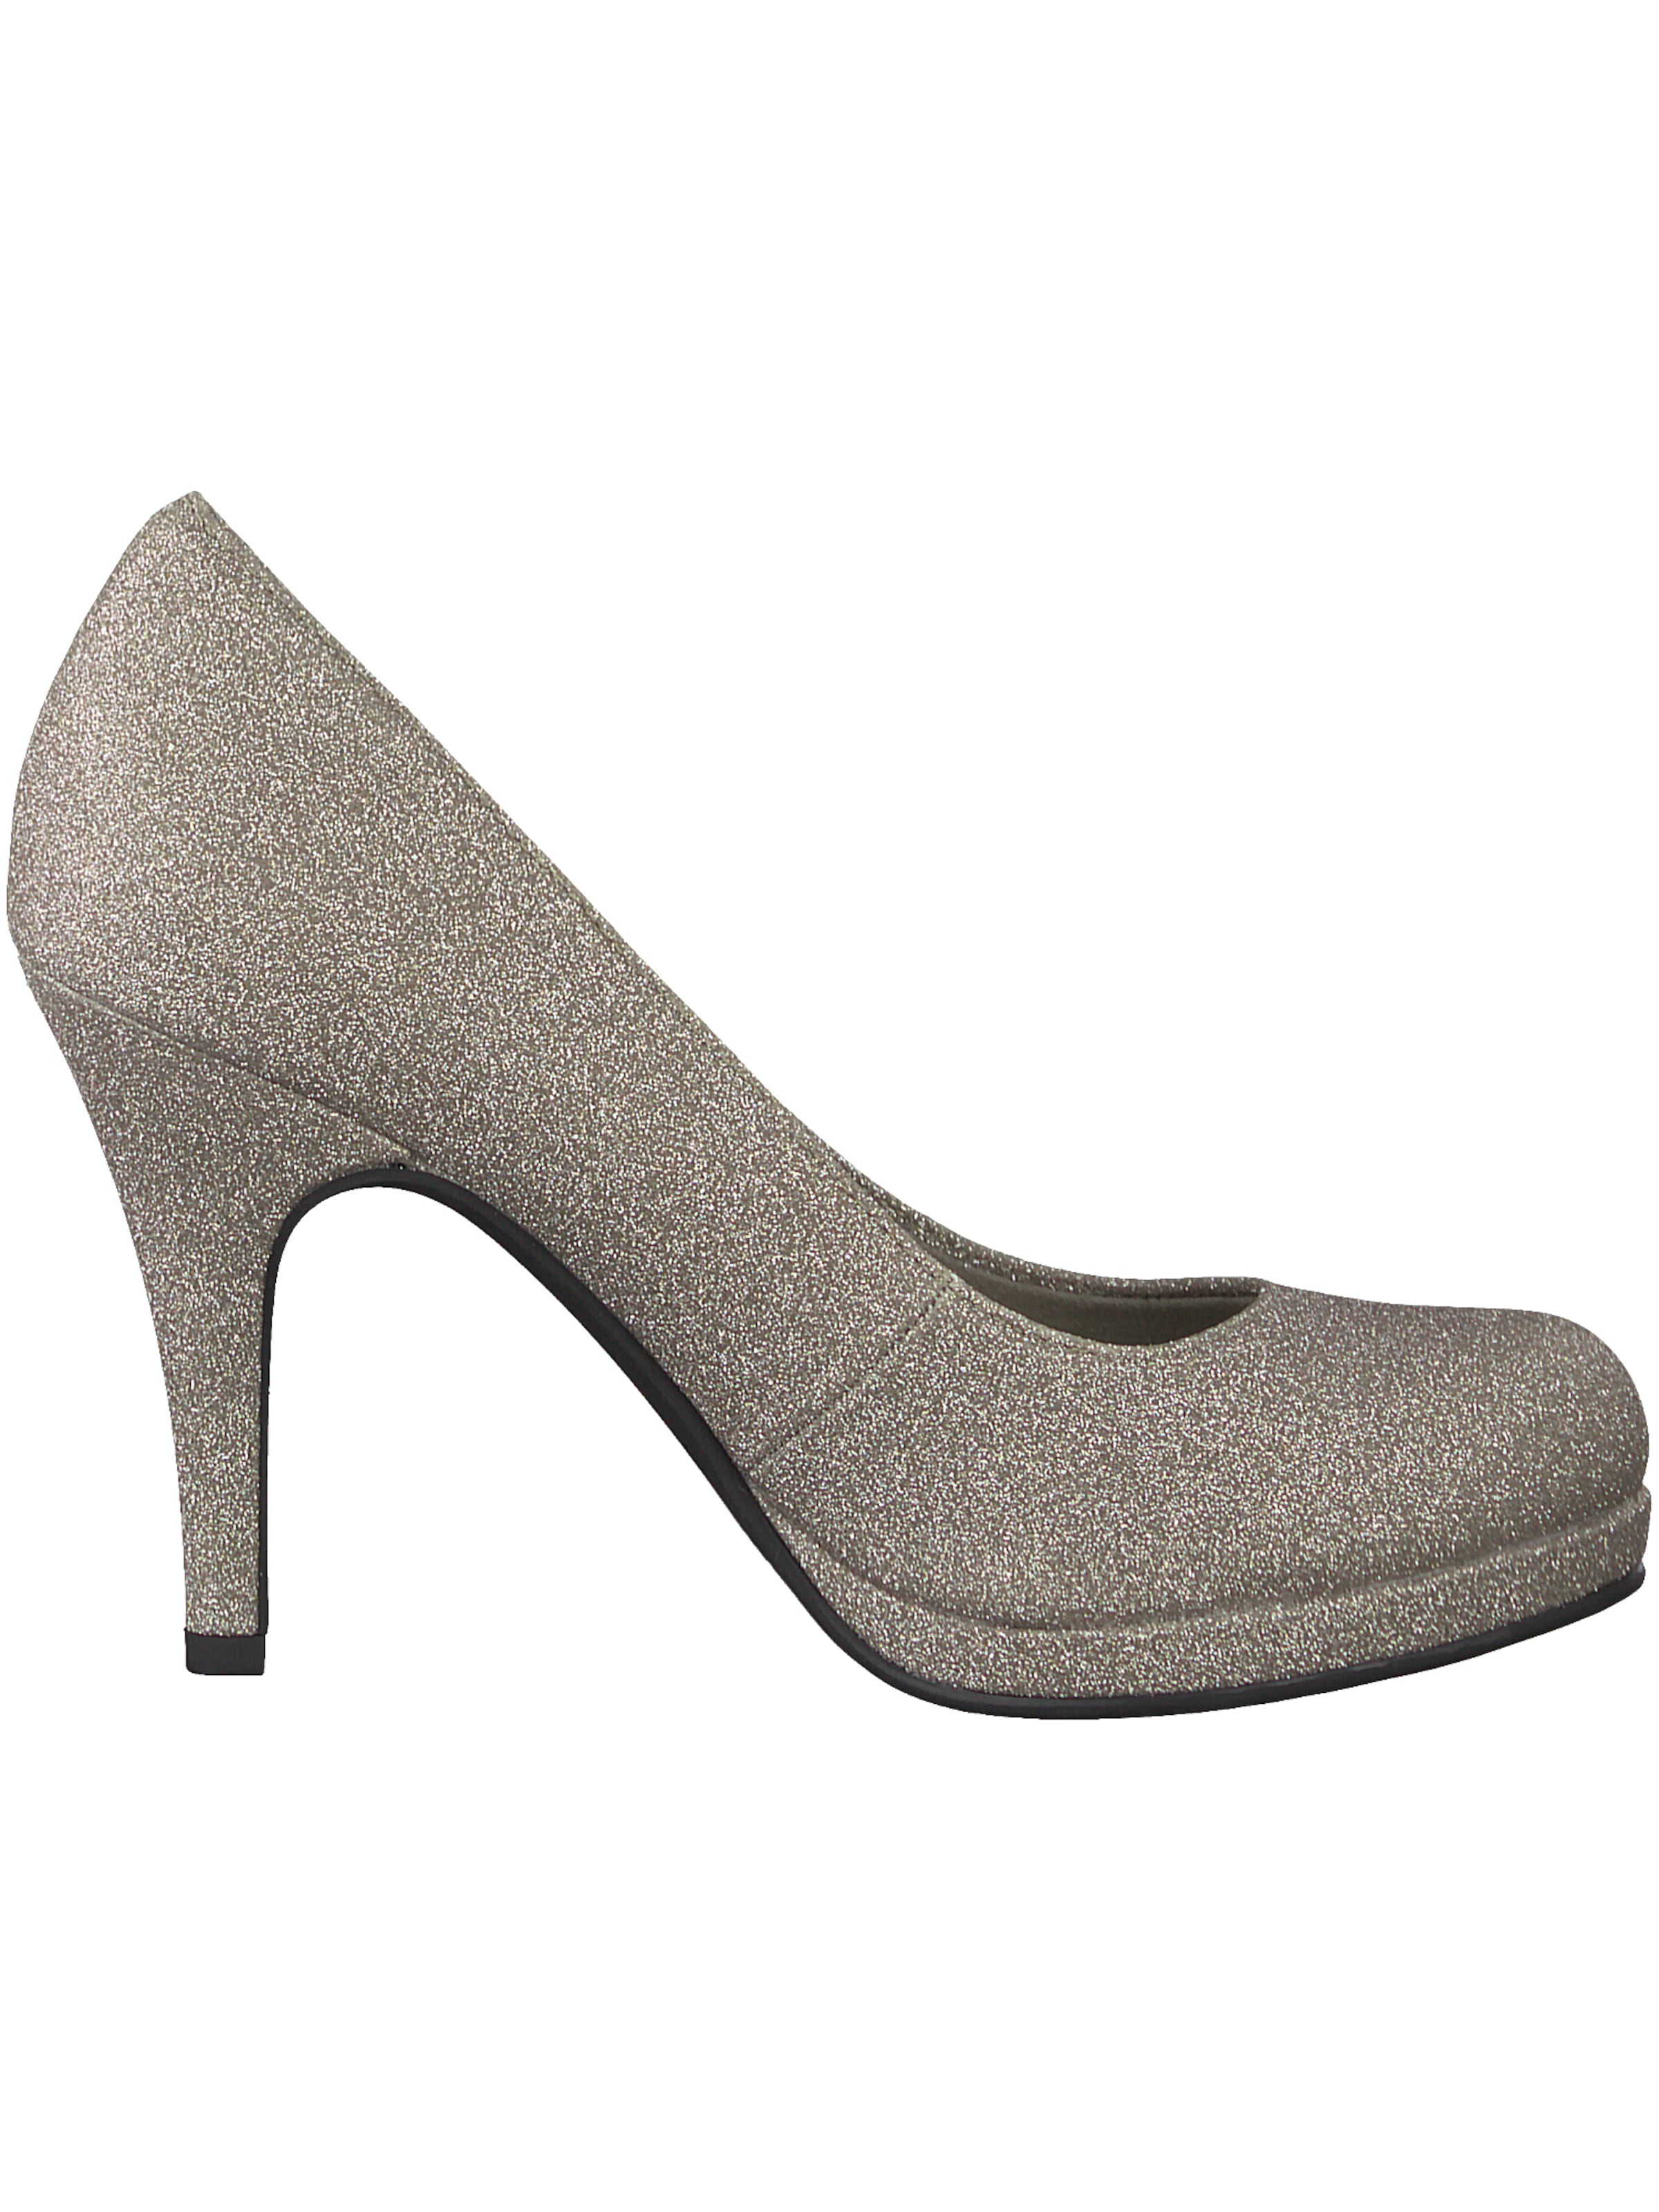 In Pumps Tamaris In Tamaris Tamaris Silber Tamaris Pumps Pumps Silber In Silber wP0k8nO